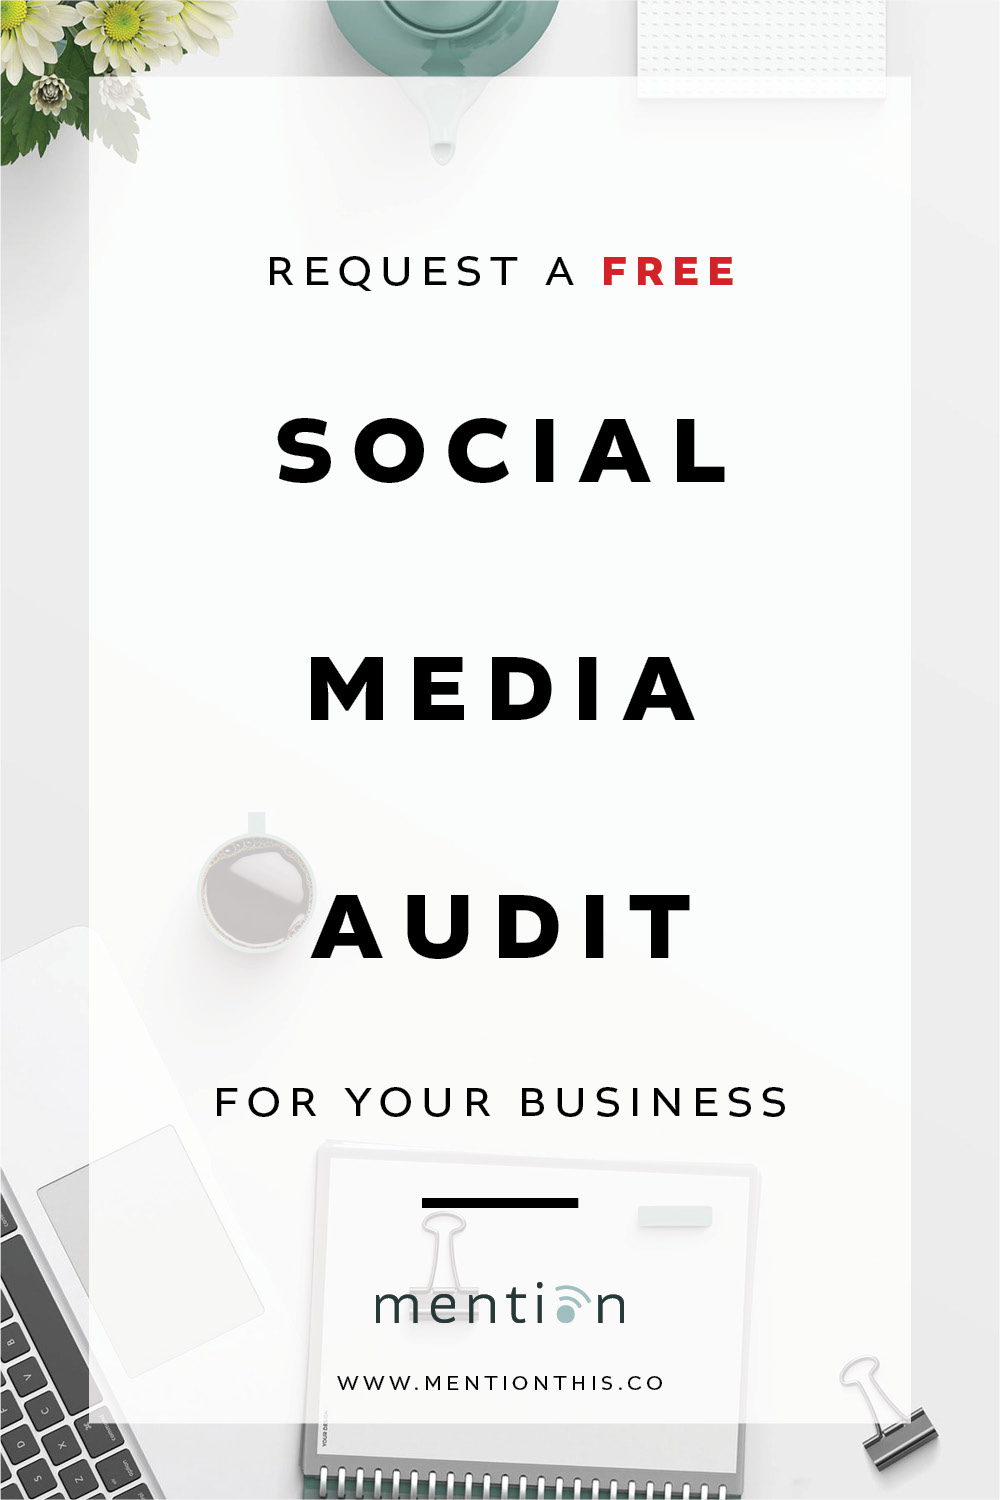 Request a Free Social Media Audit